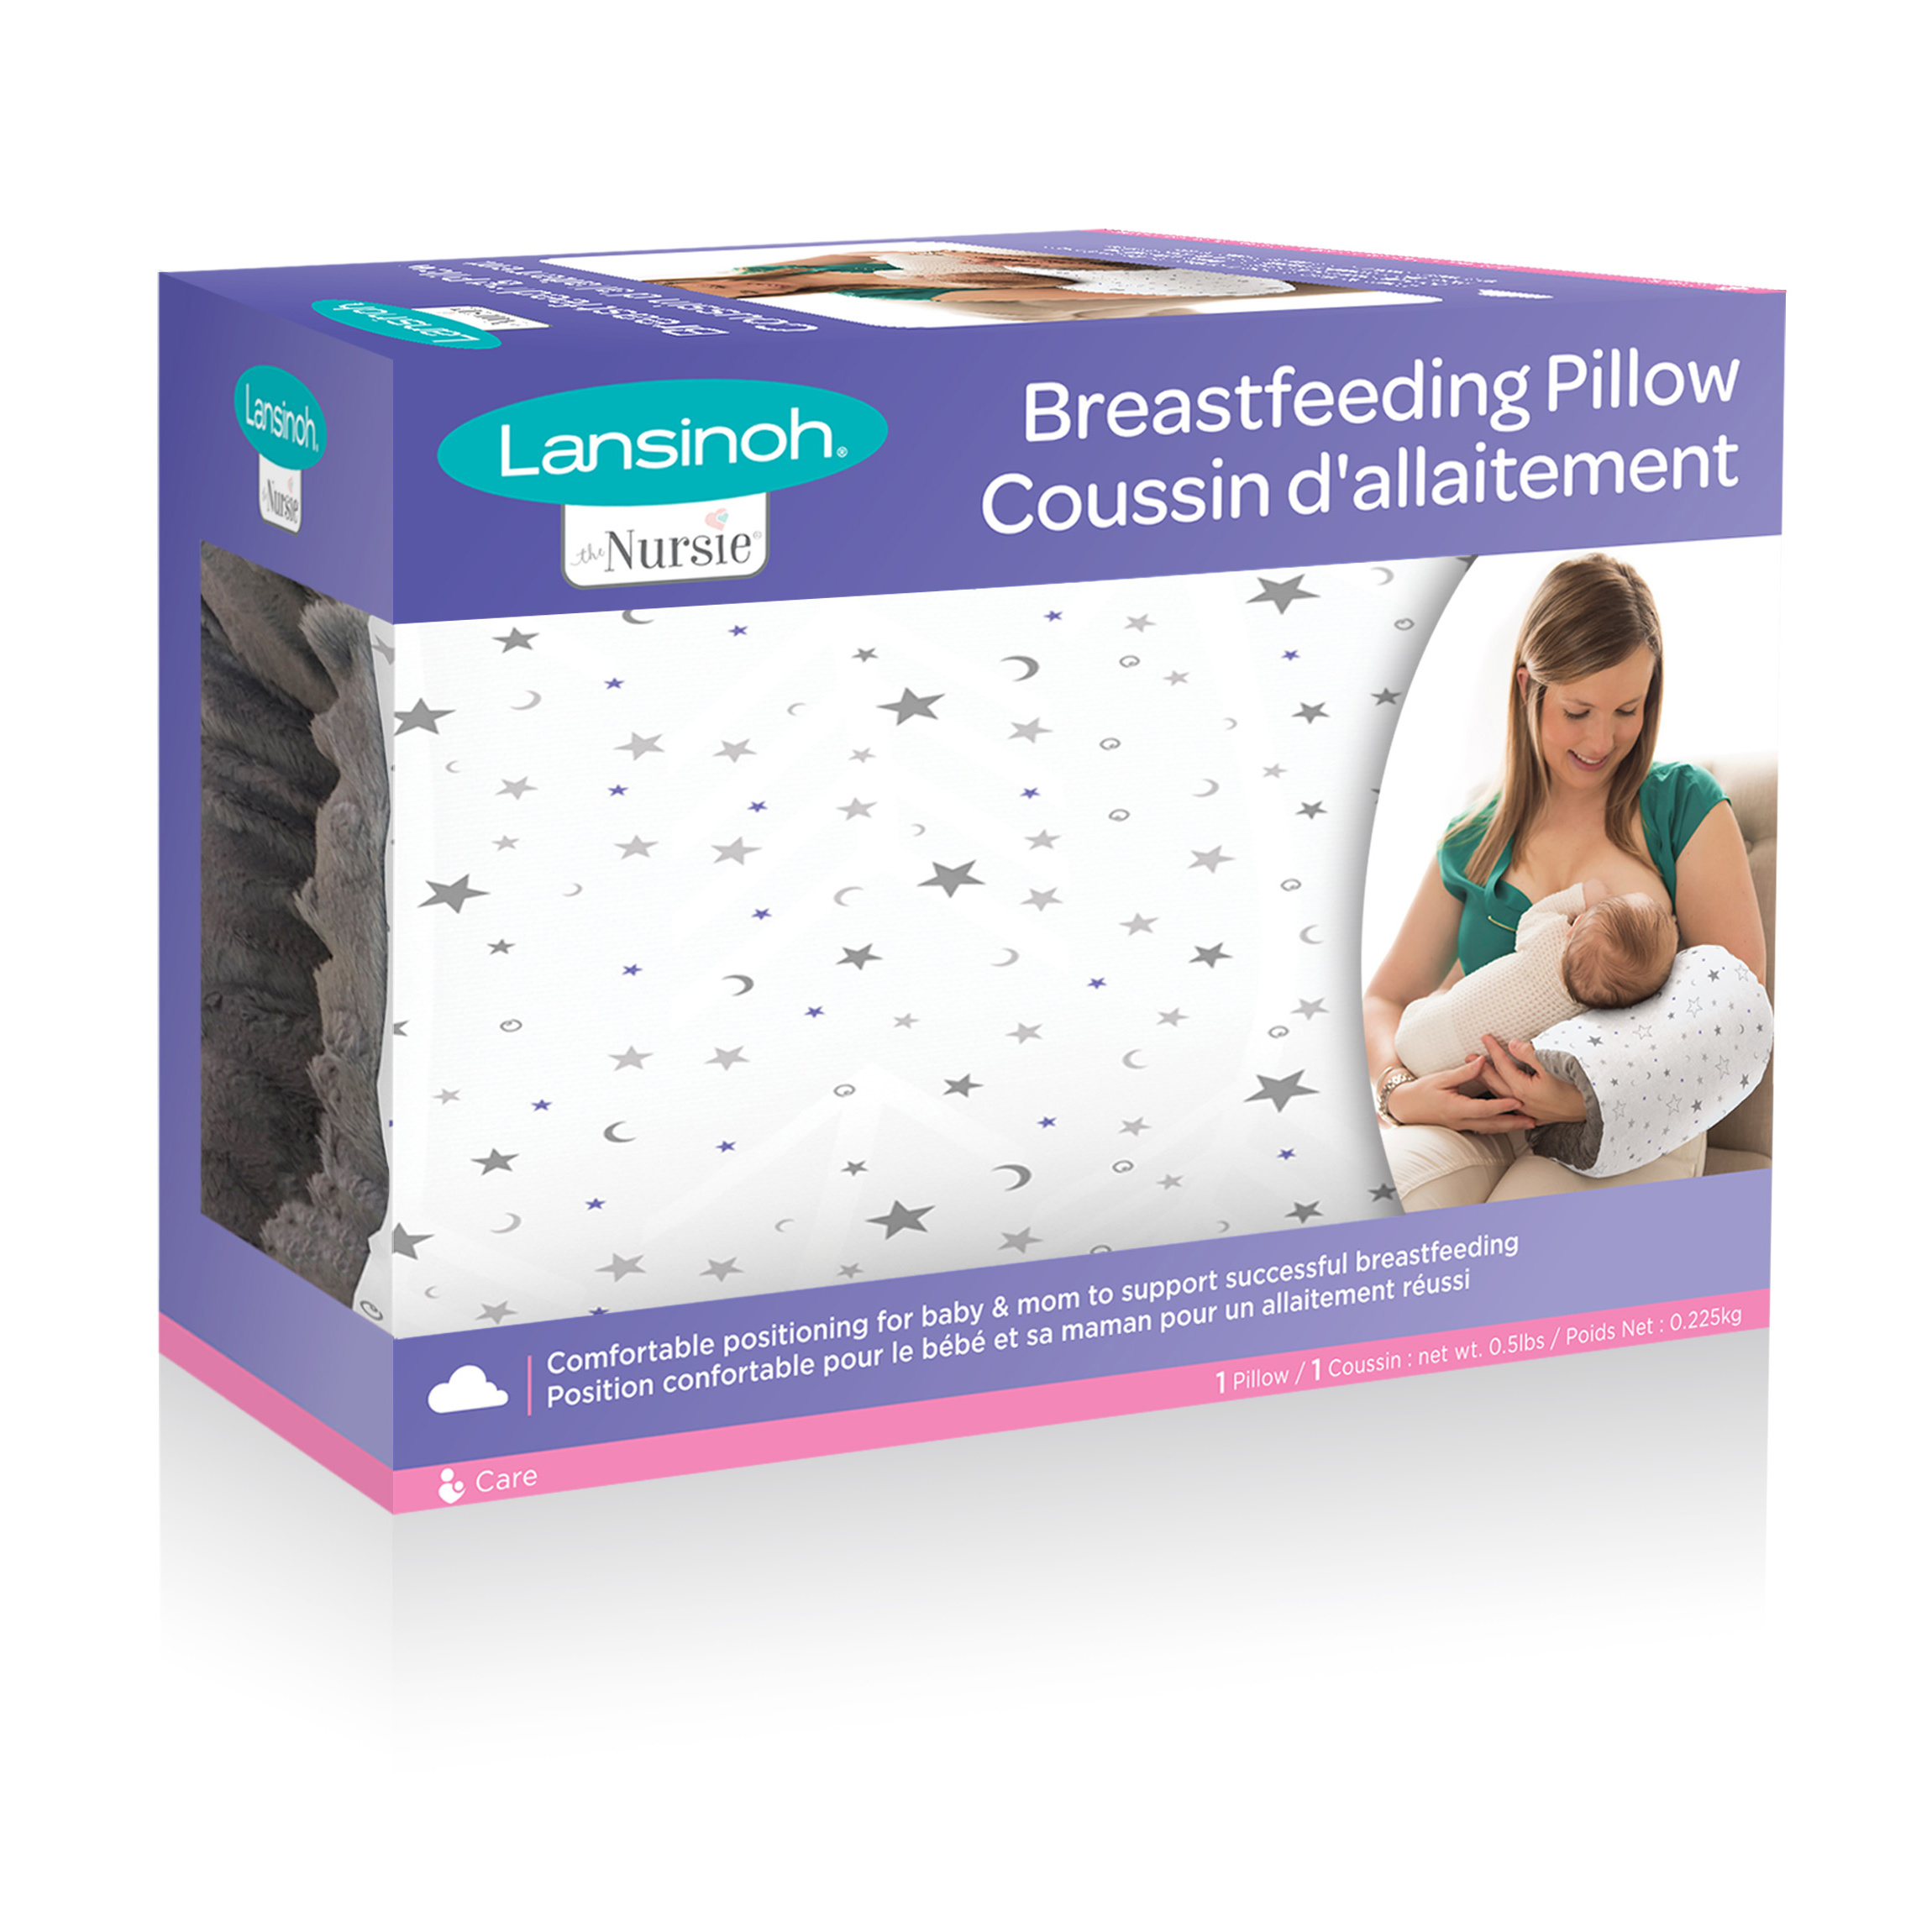 Lansinoh Nursie Breastfeeding Pillow, Ideal for C-Sections, Compact, Portable, and Washable Nursing Pillow by Lansinoh